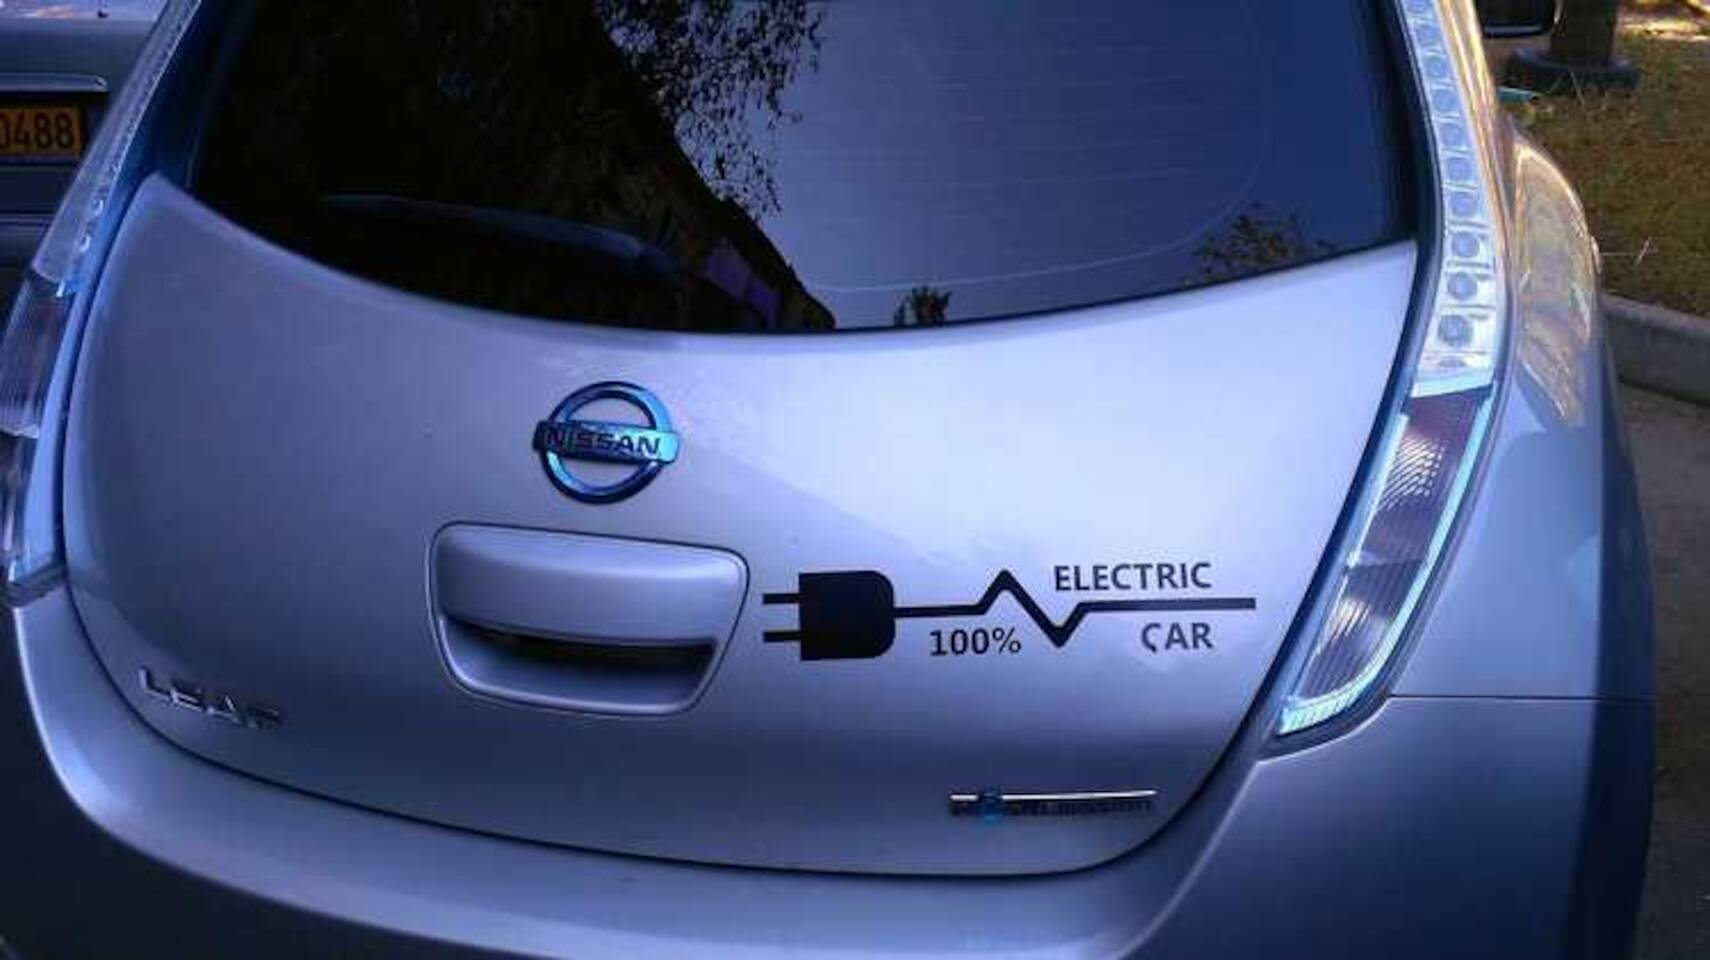 Used EVs residual value is increasing due to customers demand